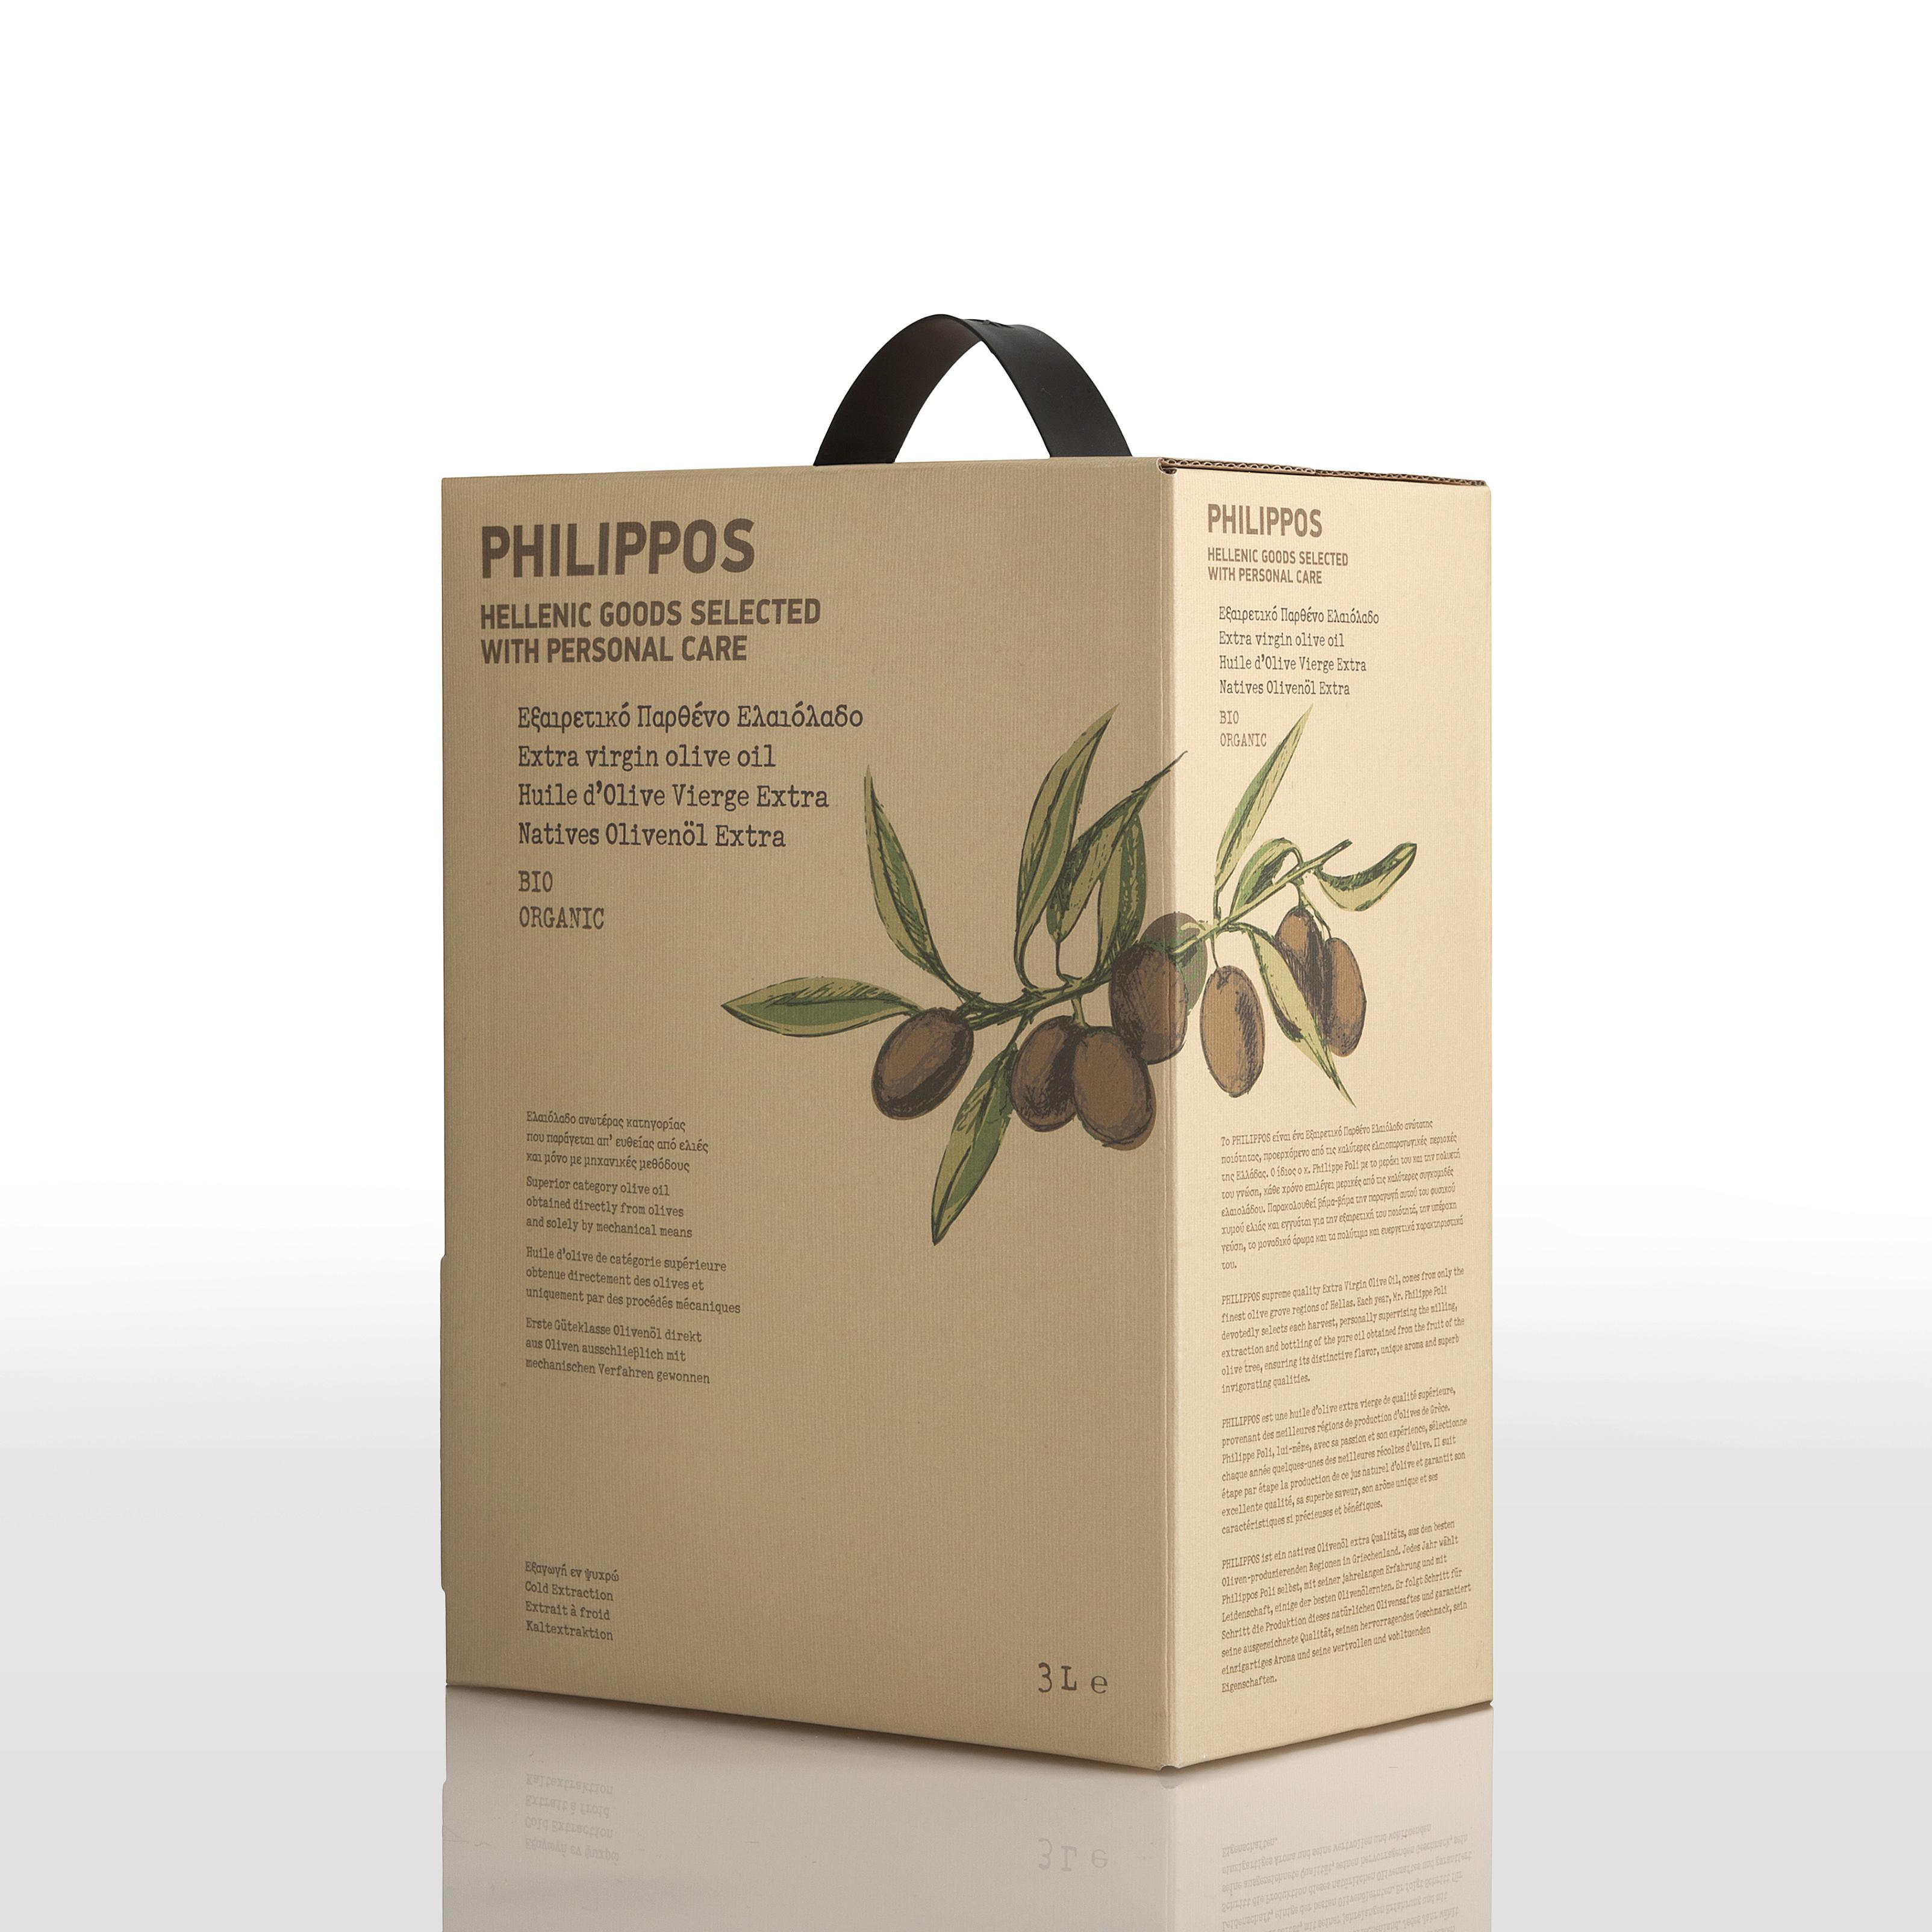 PHILIPPOS ORGANIC Extra Virgin Olive Oil 3L bag in box